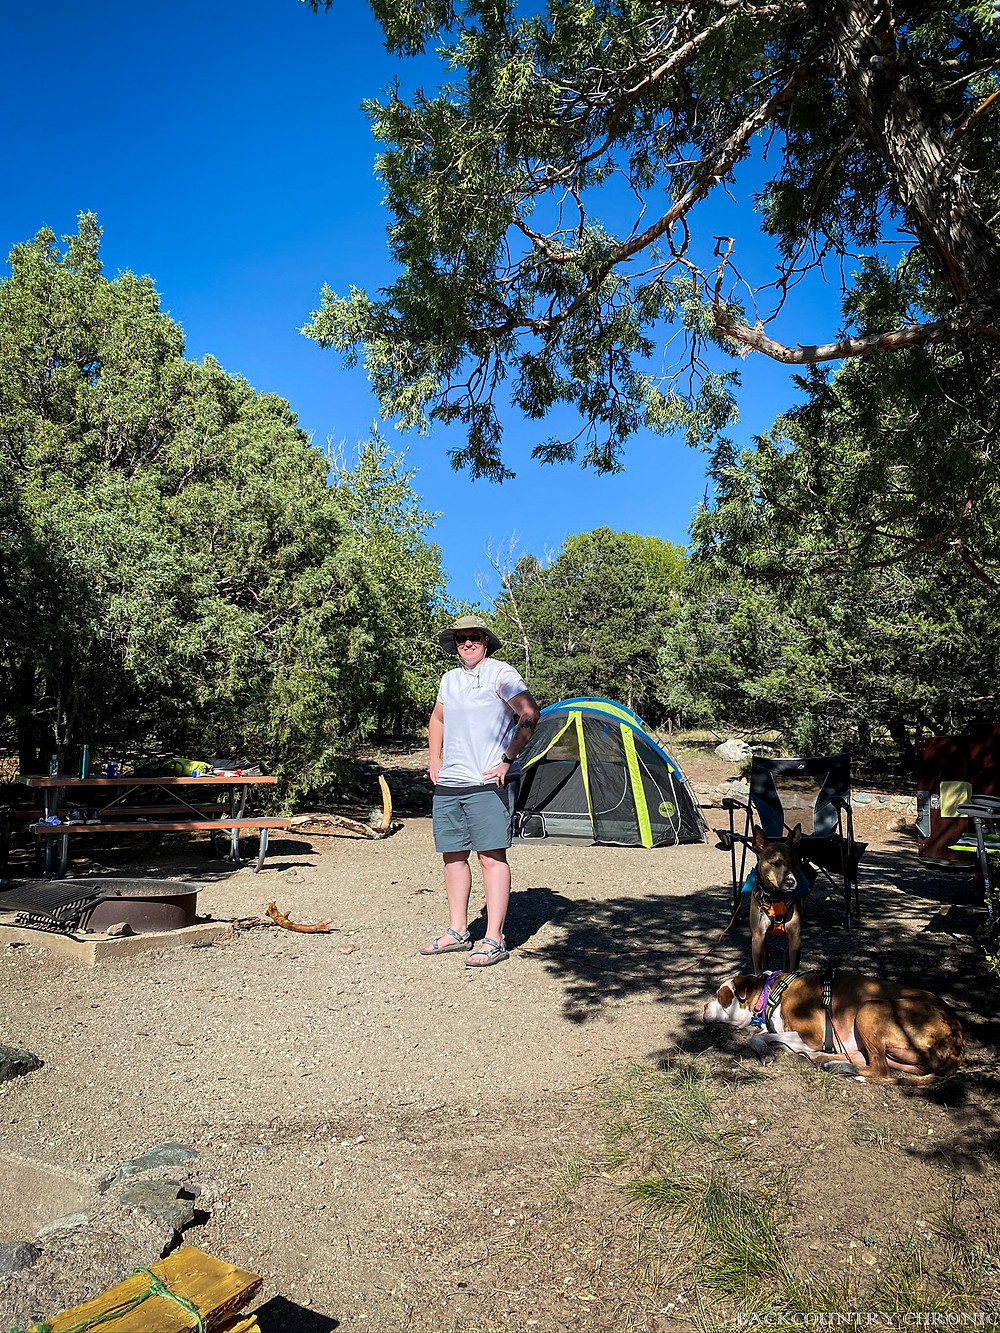 Camping at Pinon Flats in Great Sand Dunes National Park